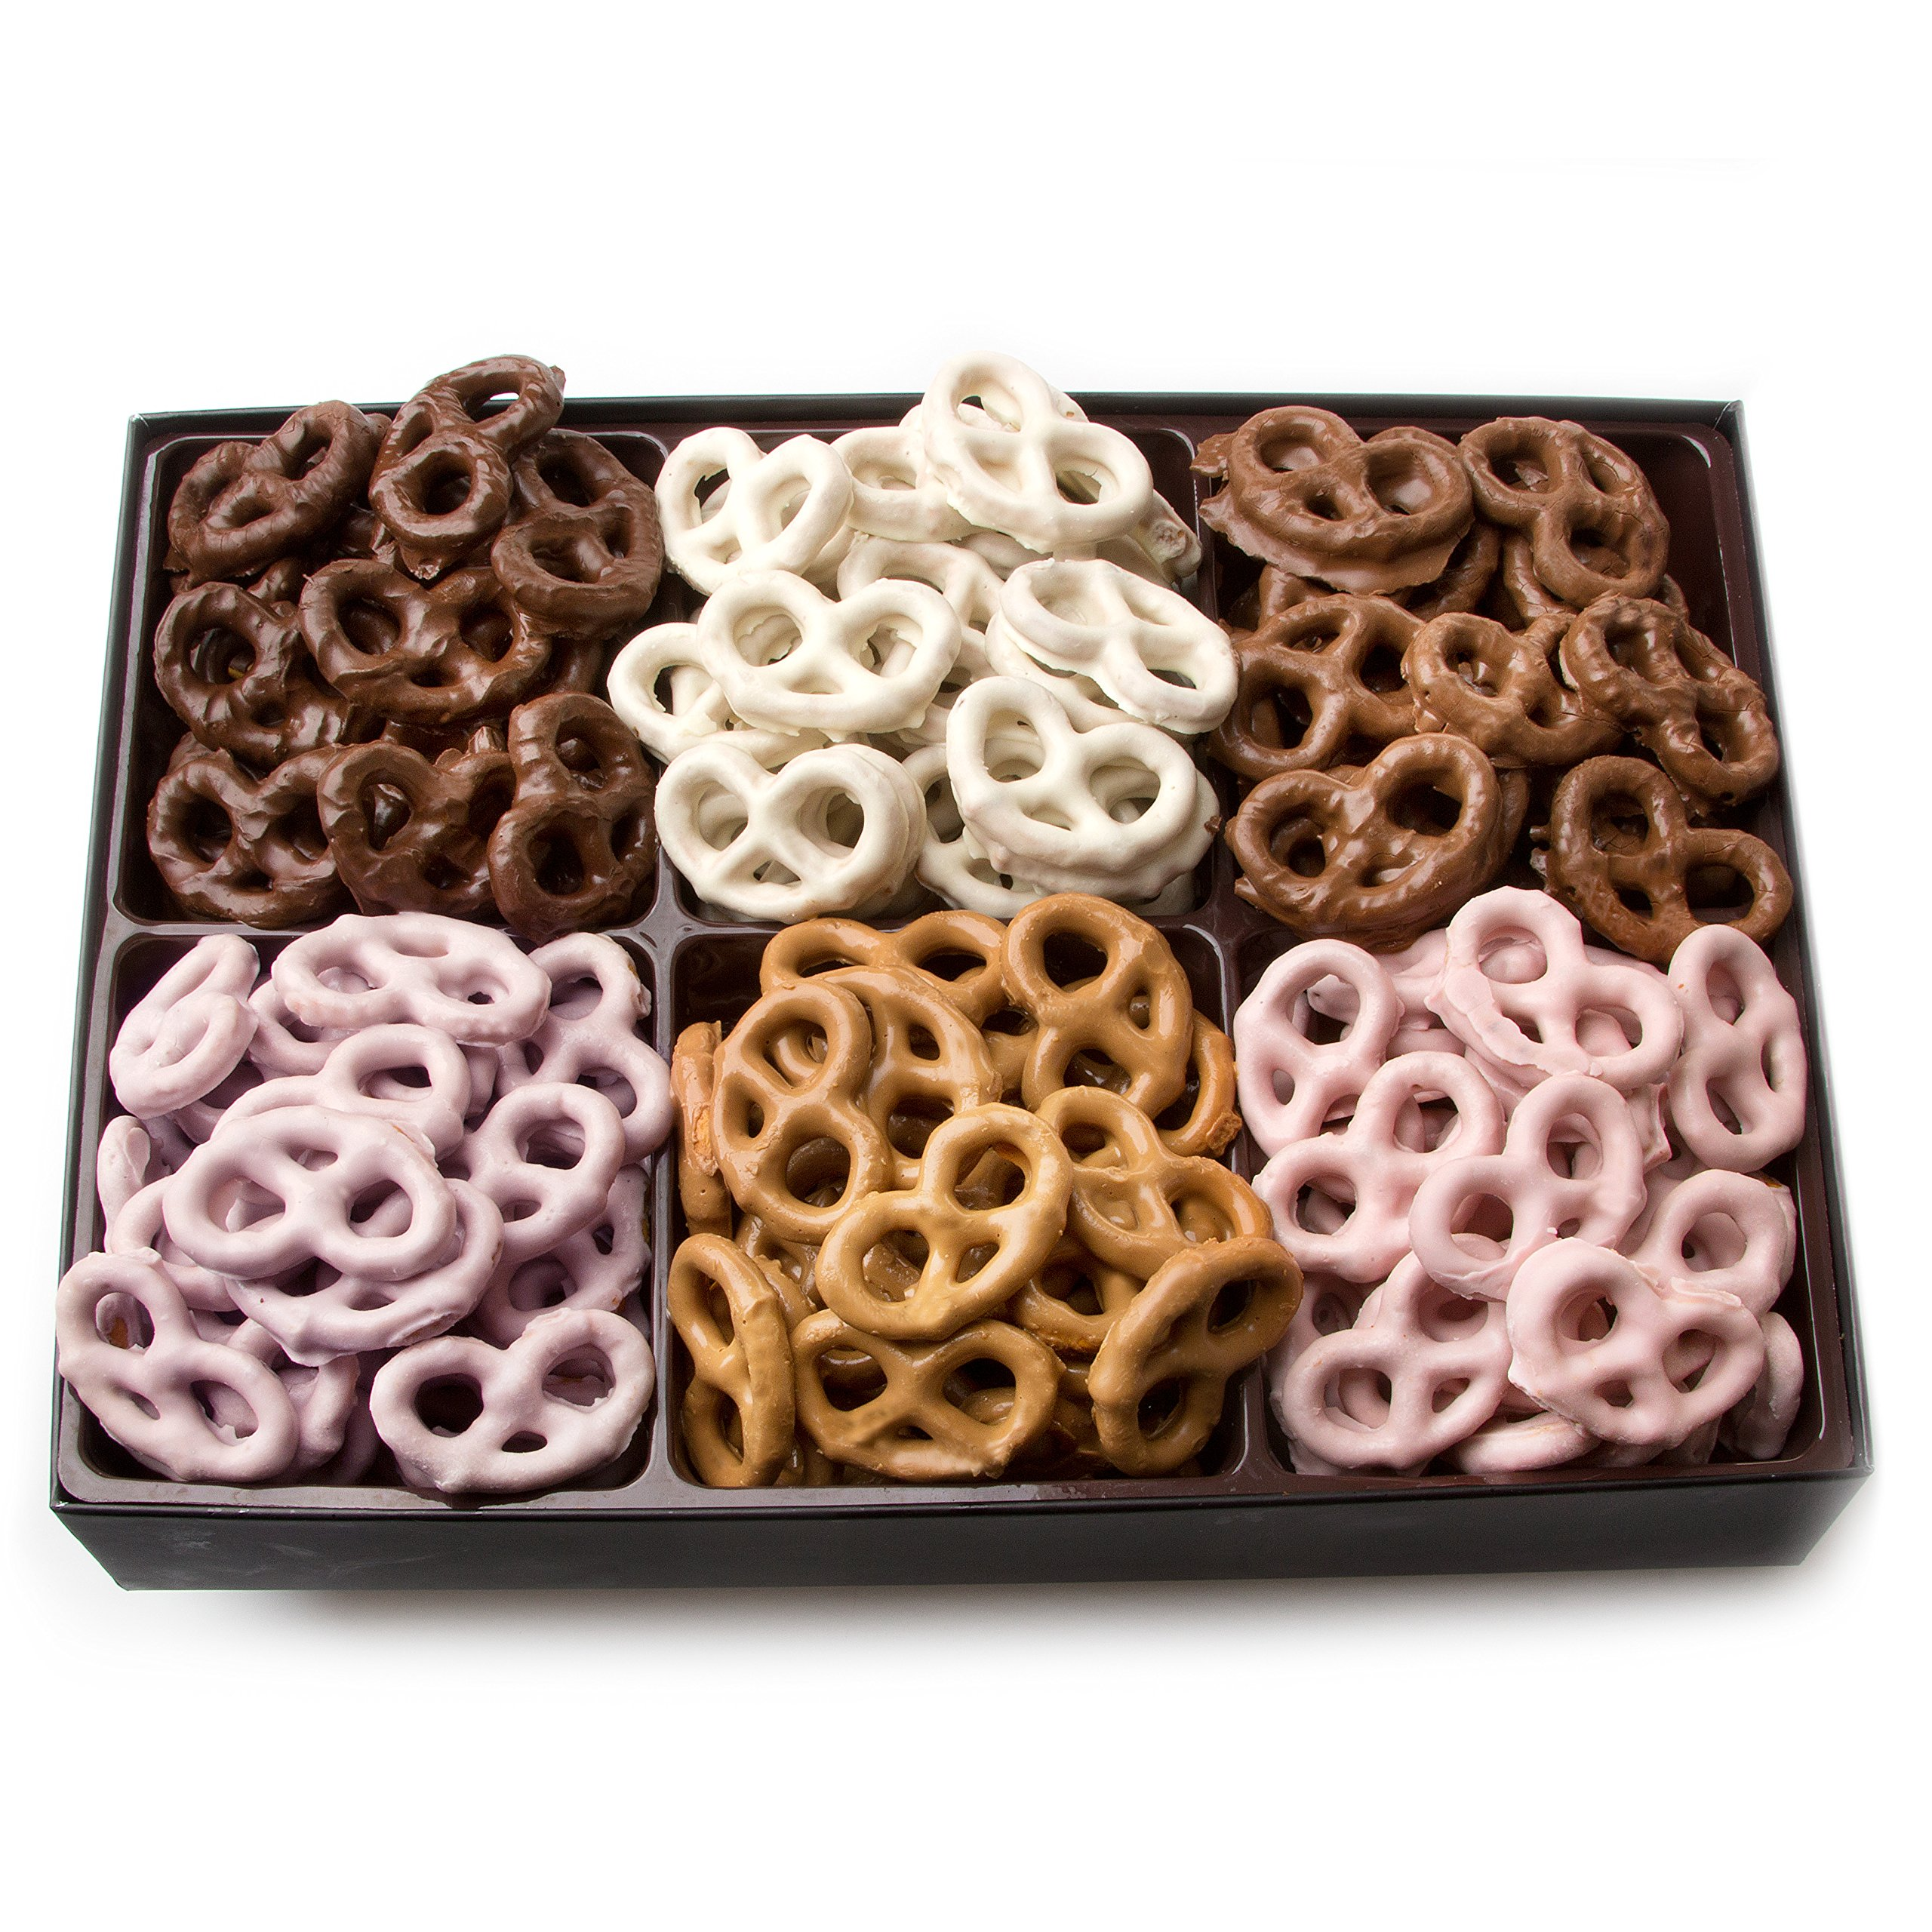 Oh! Nuts Chocolate Covered Pretzels Gift Basket, 6 Variety Assorted Flavored Set of Yogurt, Milk & Dark Gift Box, Send for Christmas Holiday Valentine's or Mother's Day a Sweet Treat for Men & Women by Oh! Nuts® (Image #3)